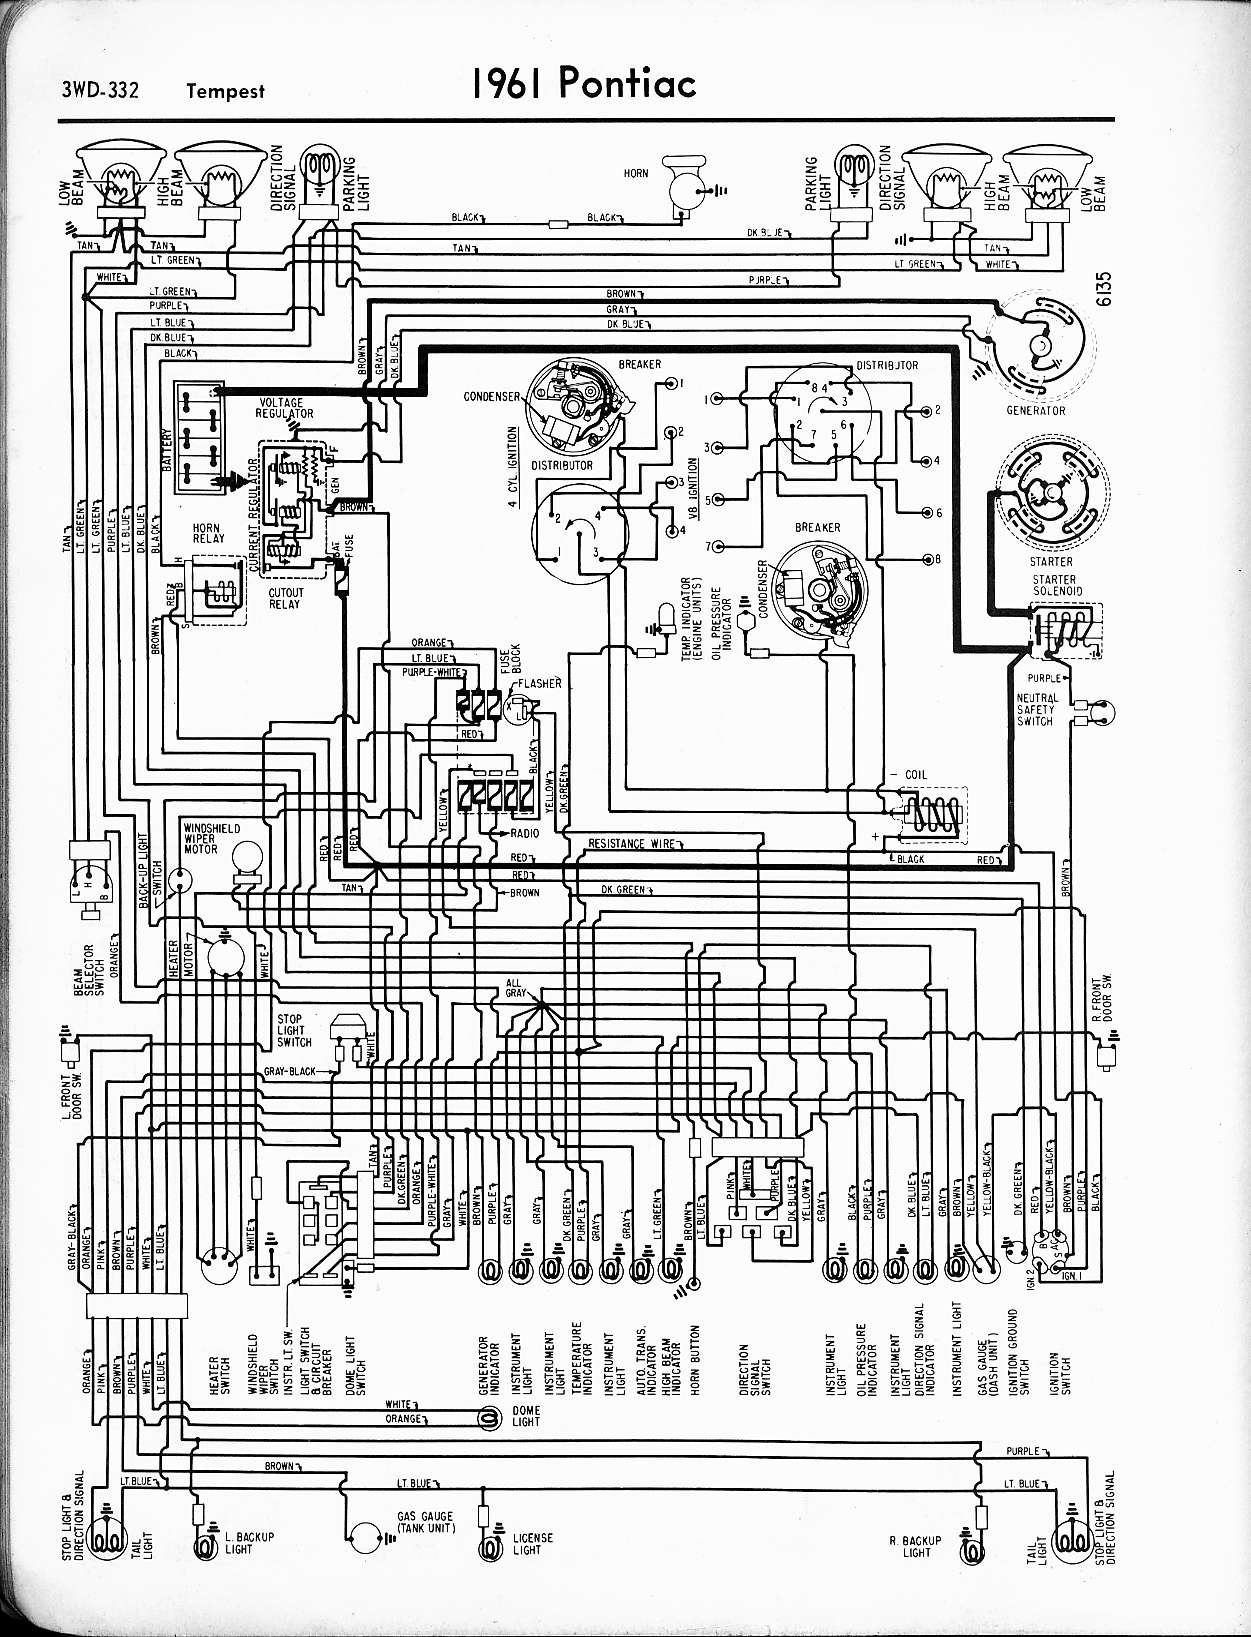 1960 pontiac 389 engine diagram